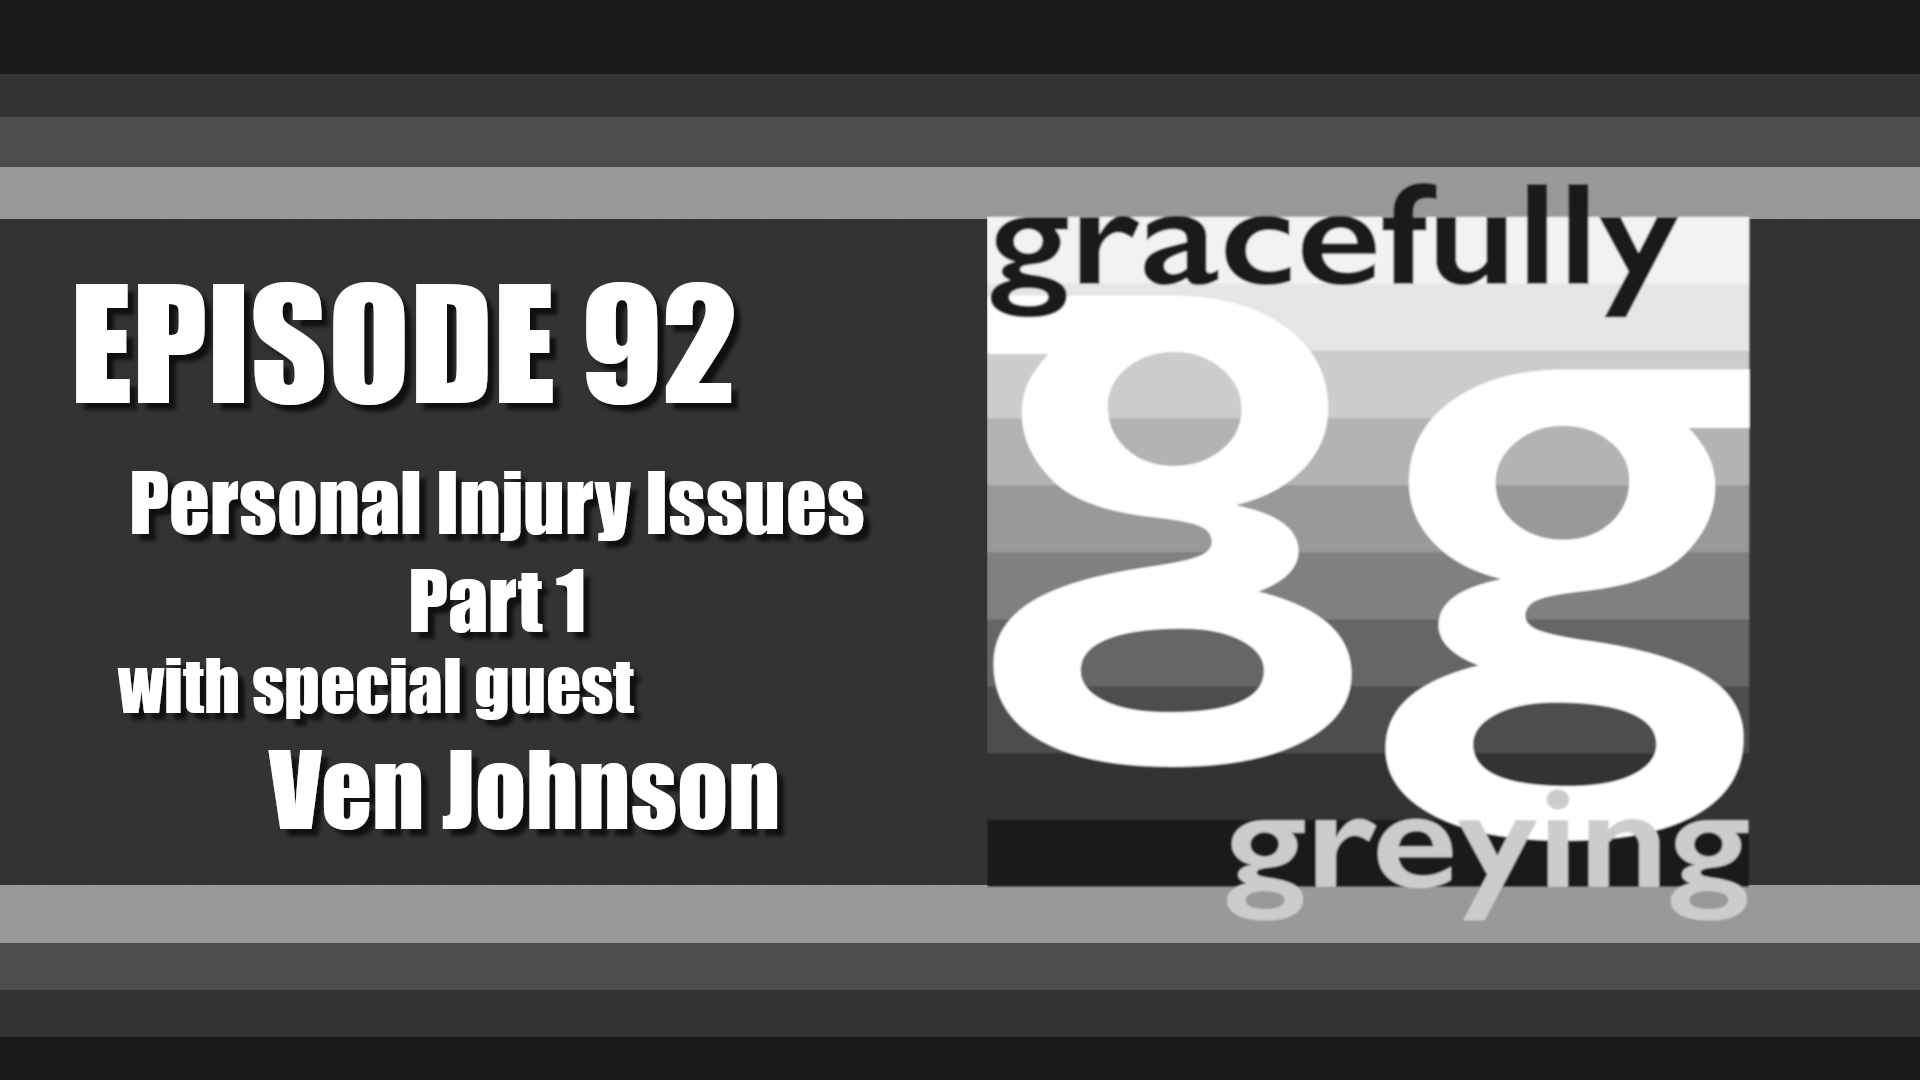 Gracefully Greying - Episode 92 - Personal Injury Issues - Part 1